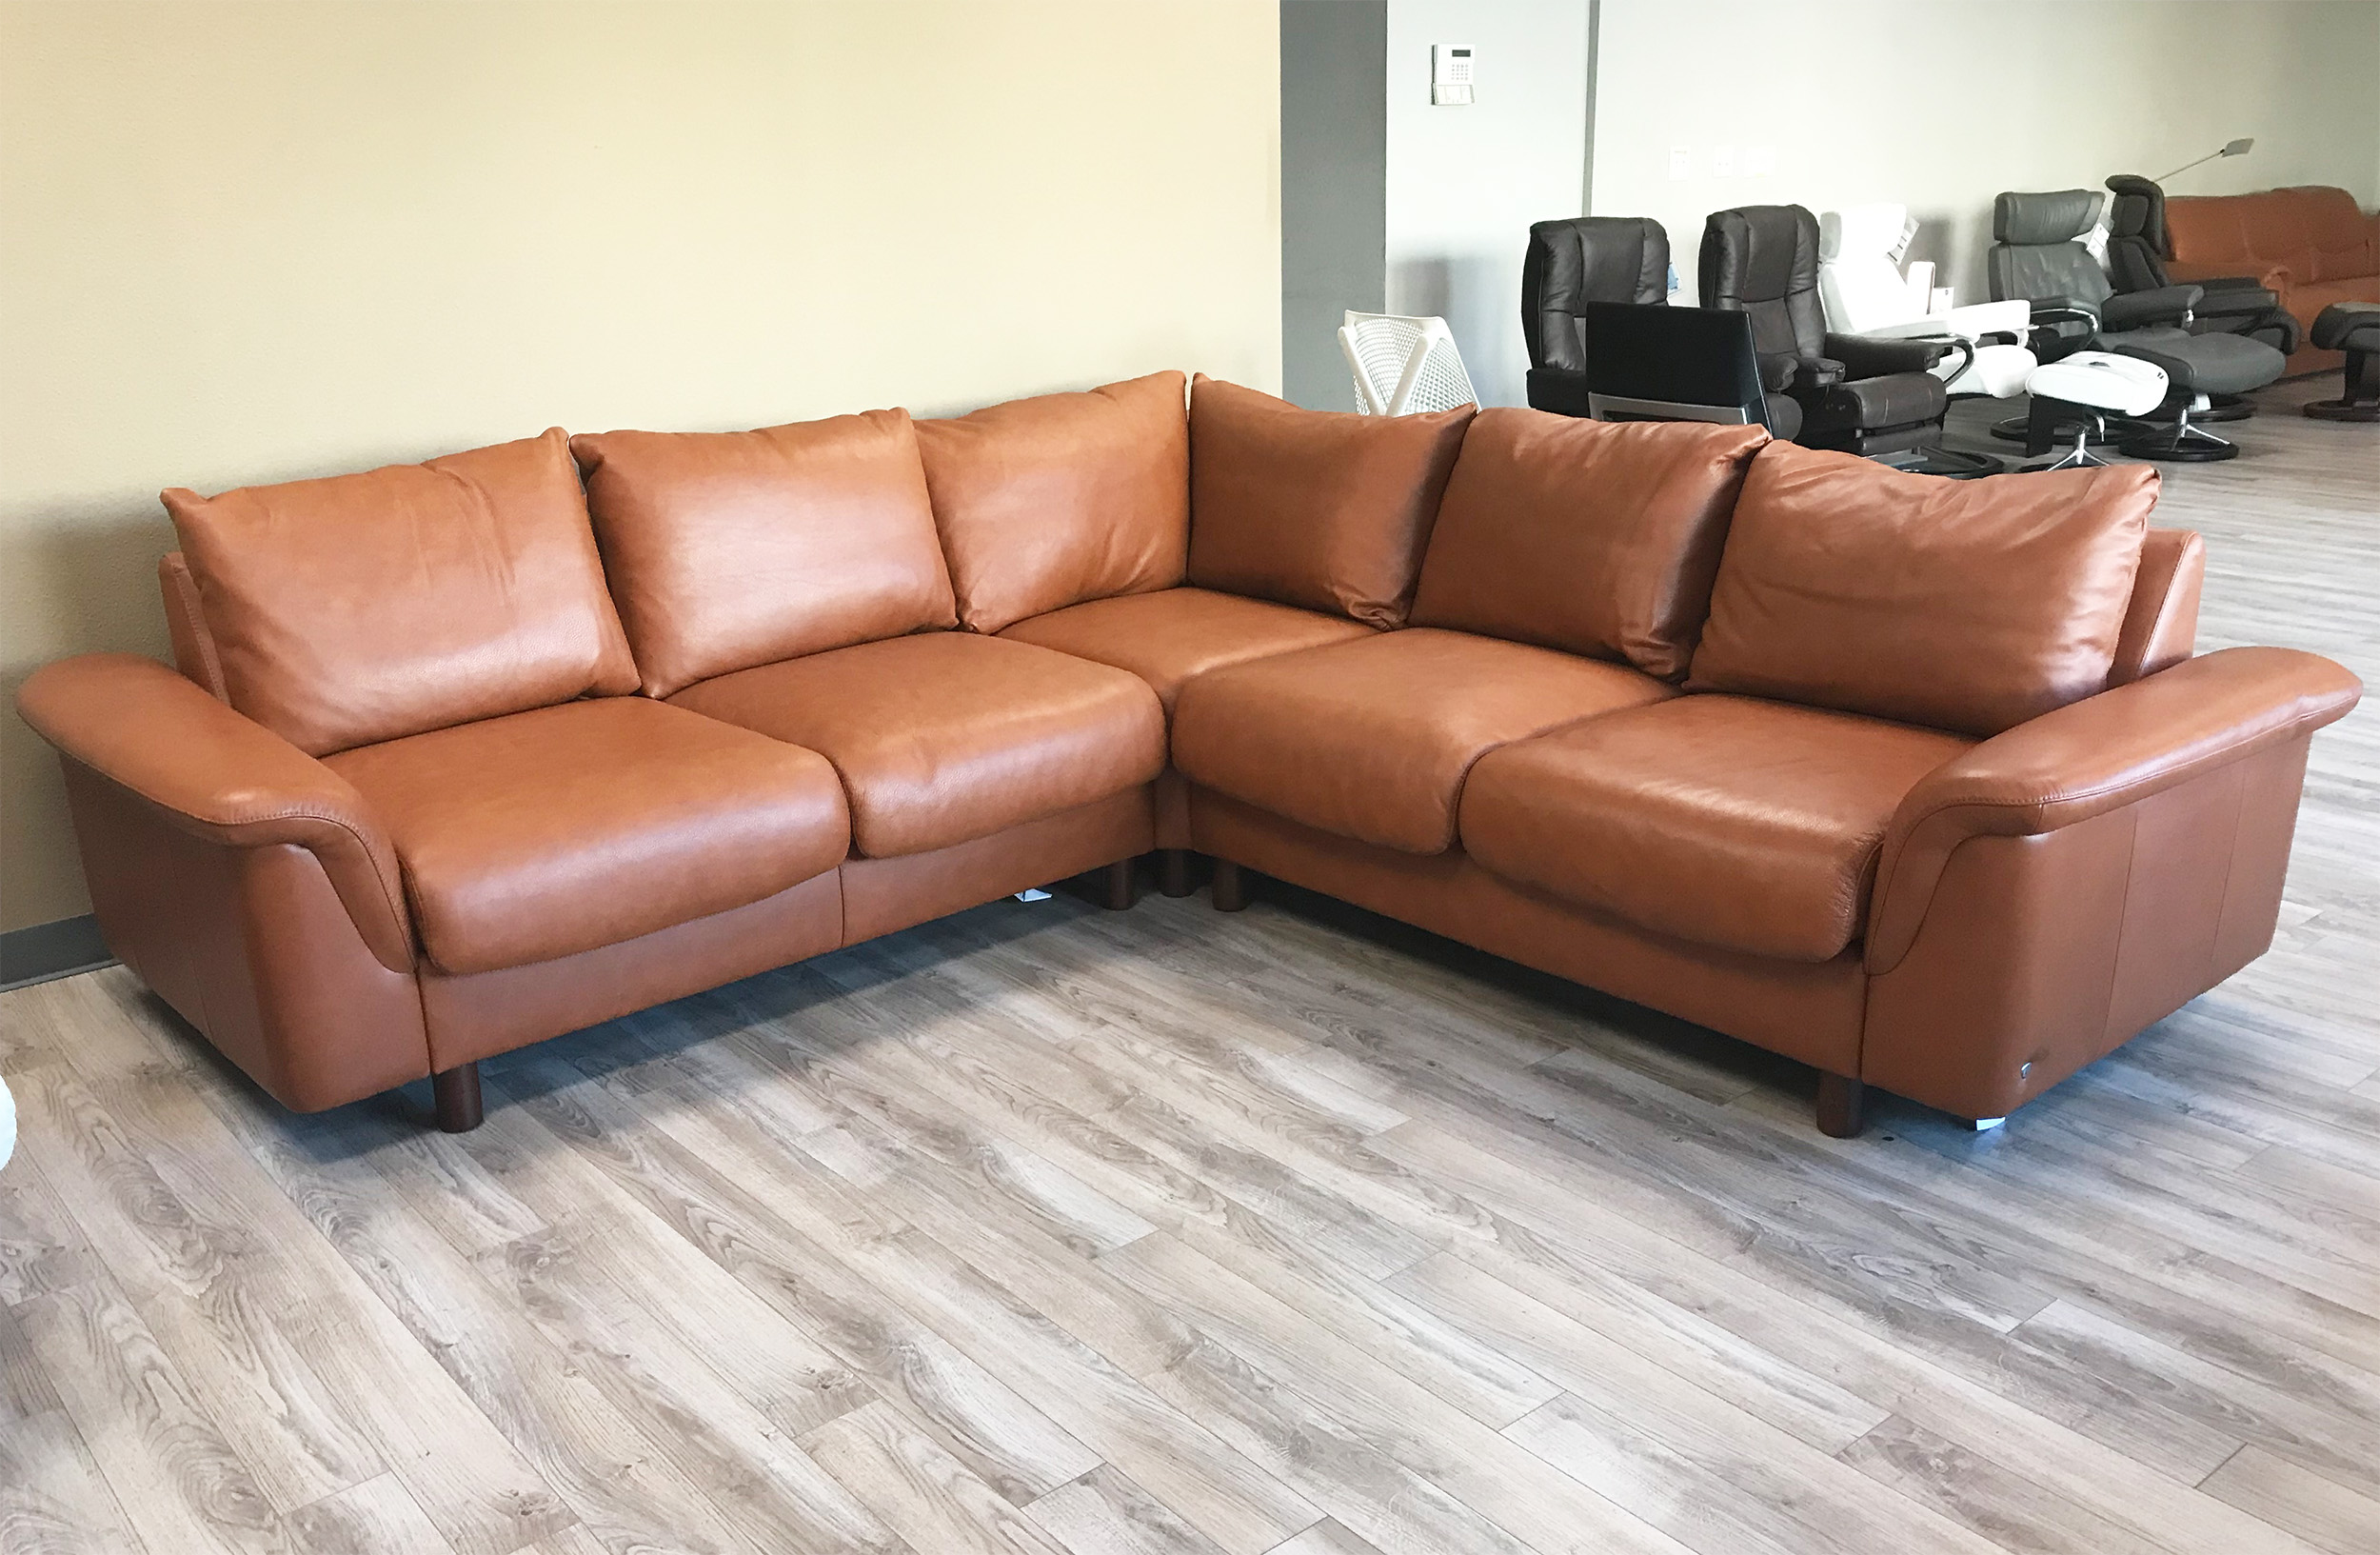 Stressless E300 6 Seat Sectional Sofa with LongSeat in ...